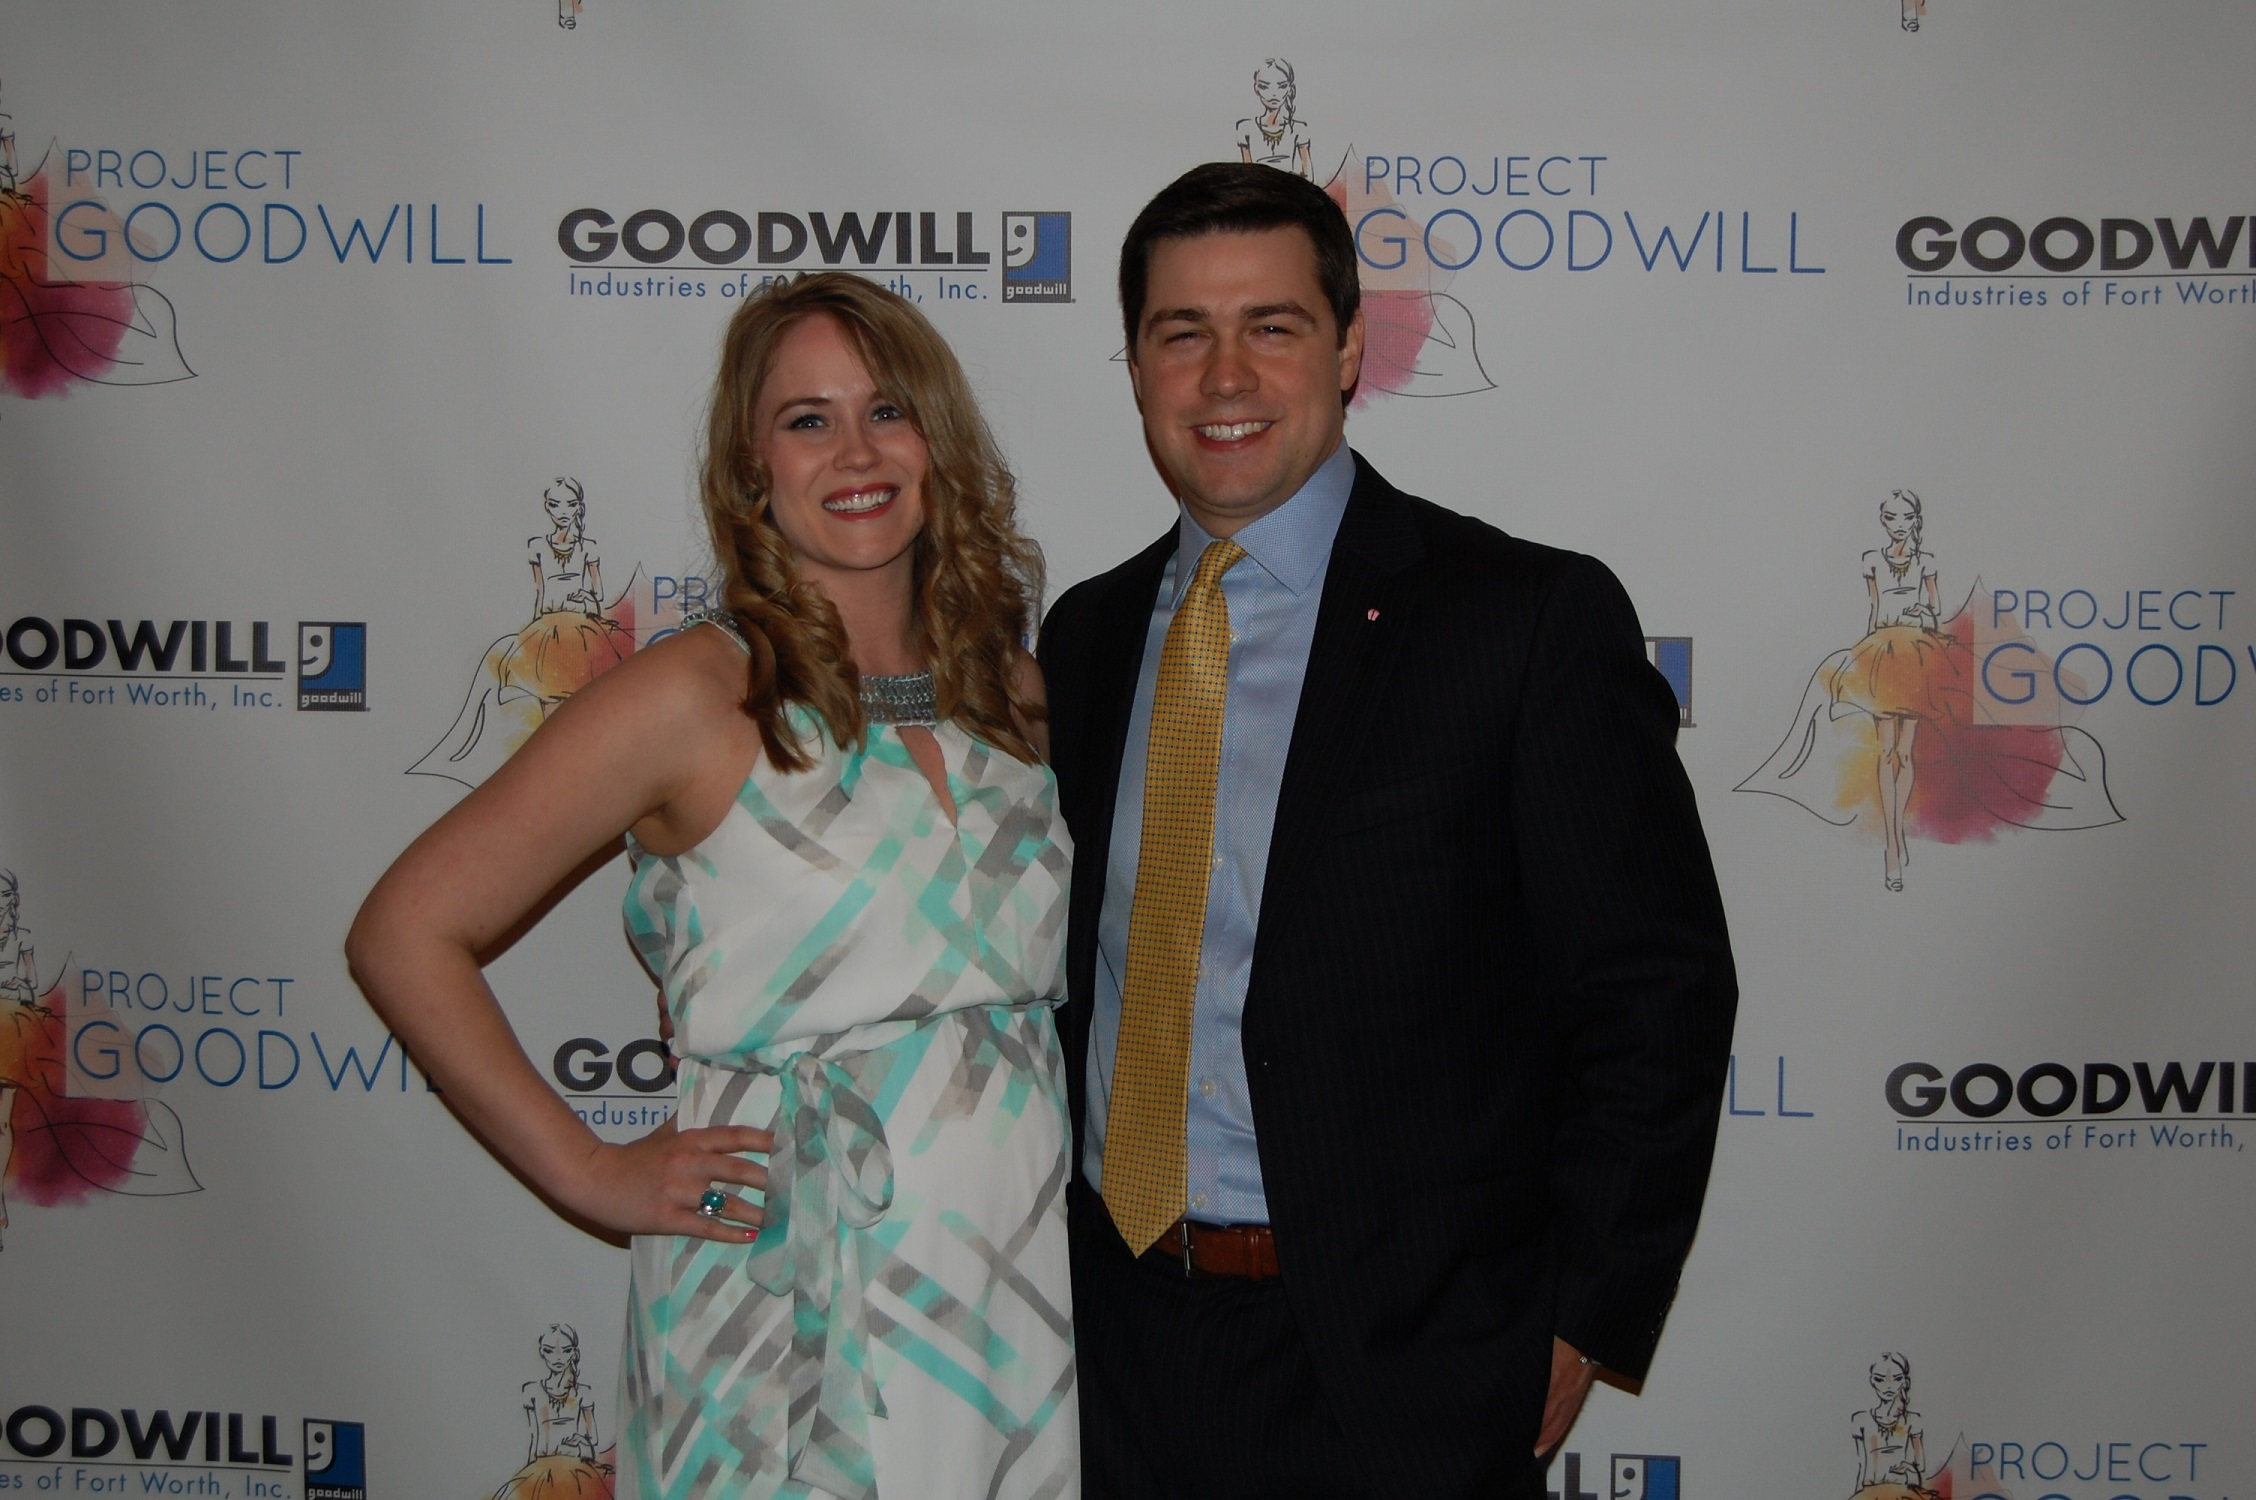 Project Goodwill 2016